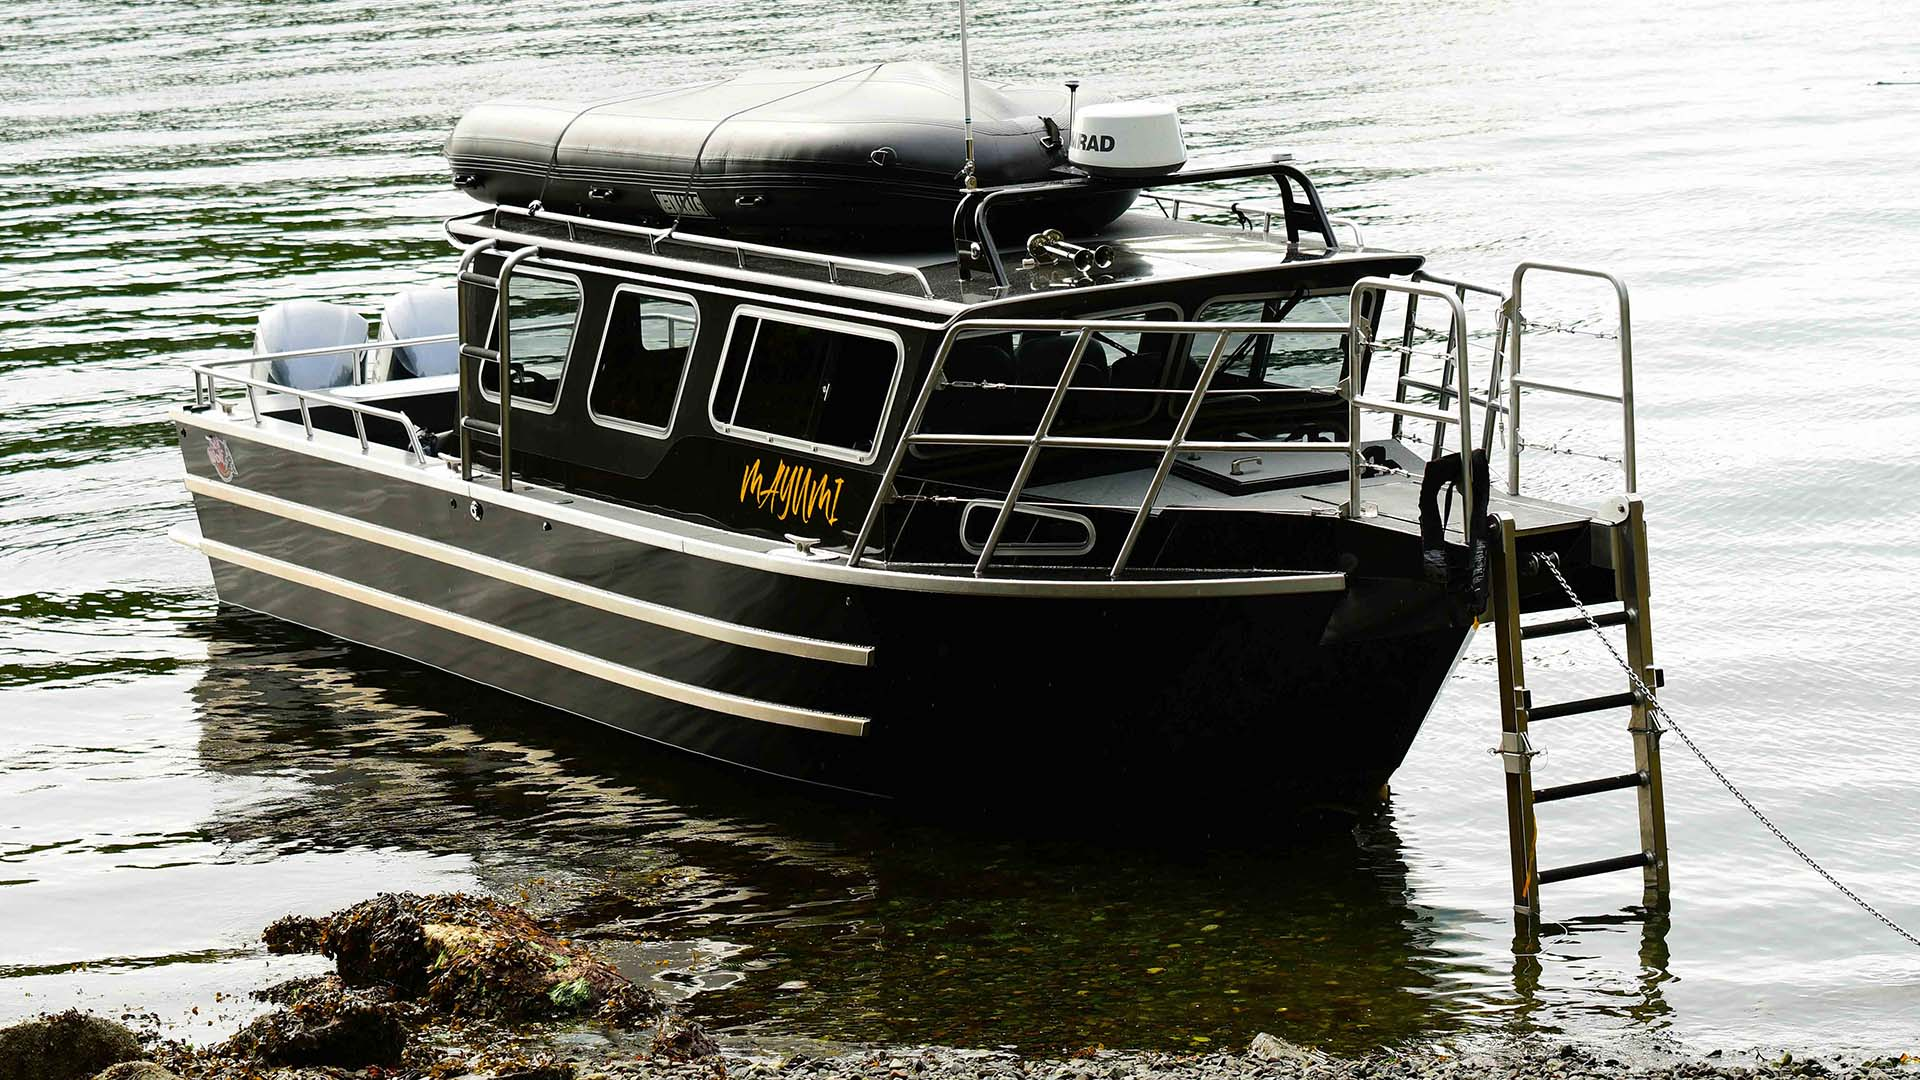 Mayumi - One of Sea Wolf Adventures' tour boats